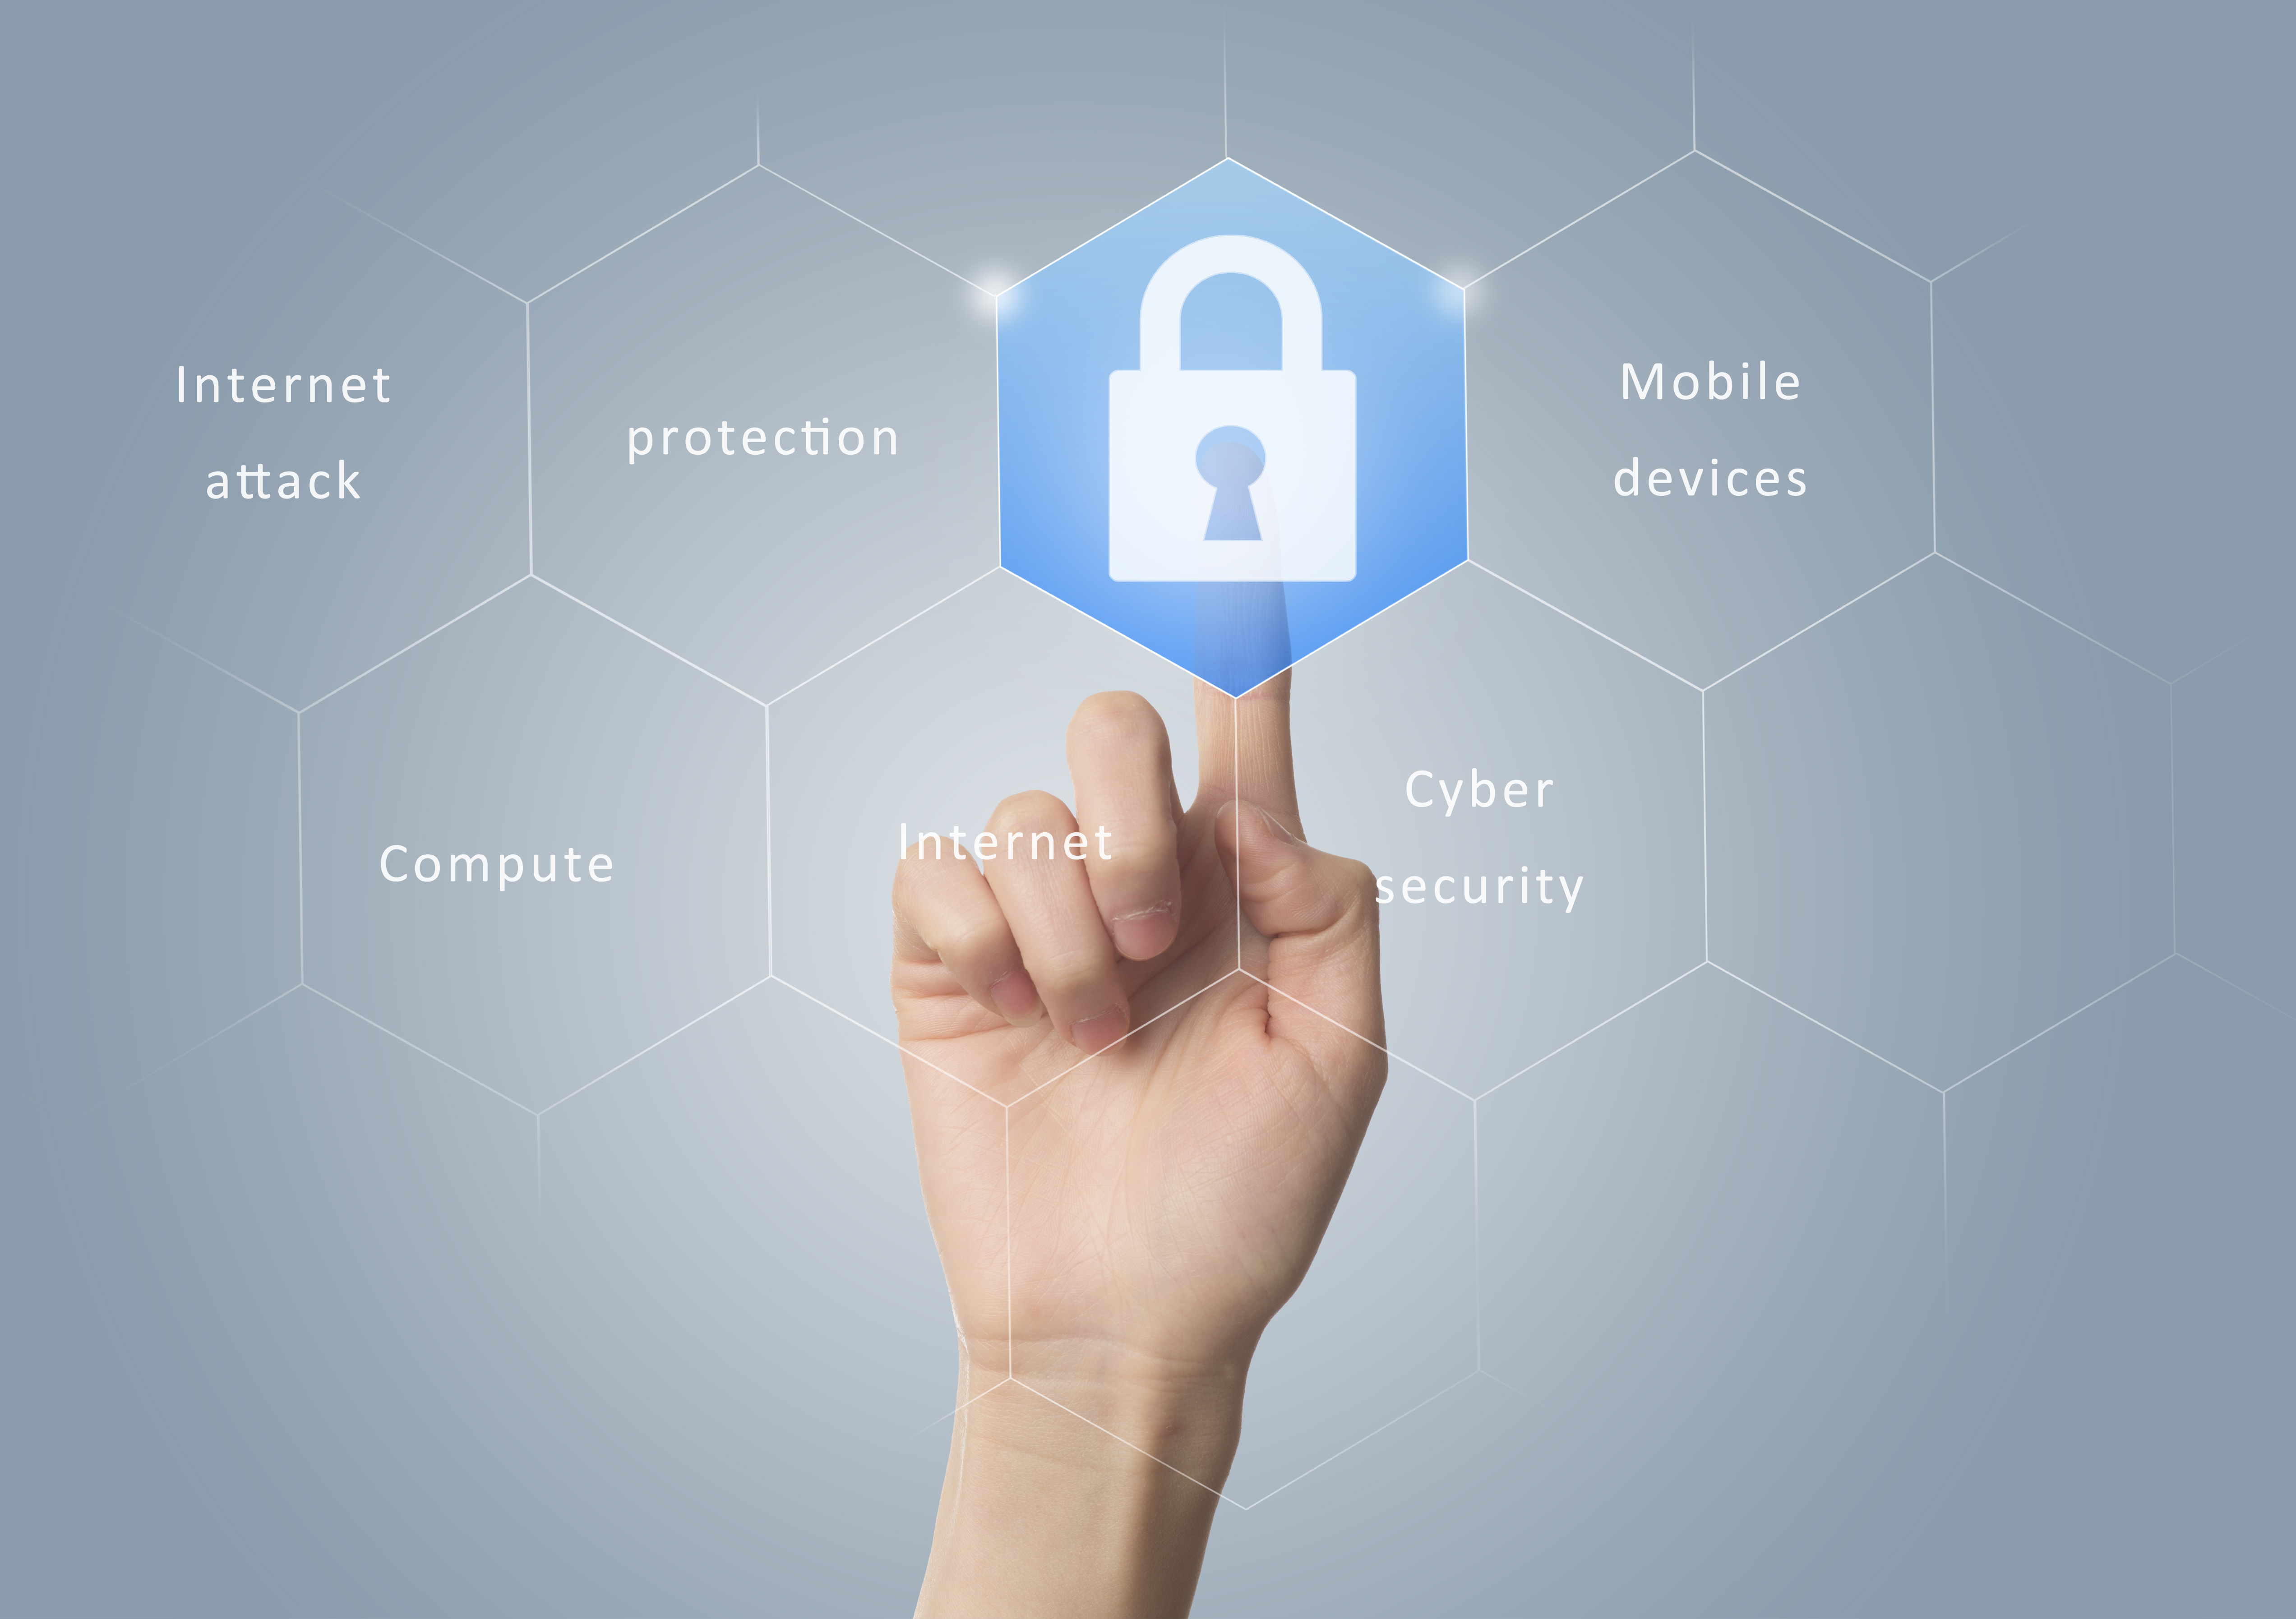 Part I: How can HR Executives Protect Employee Information from Cyber Hacking